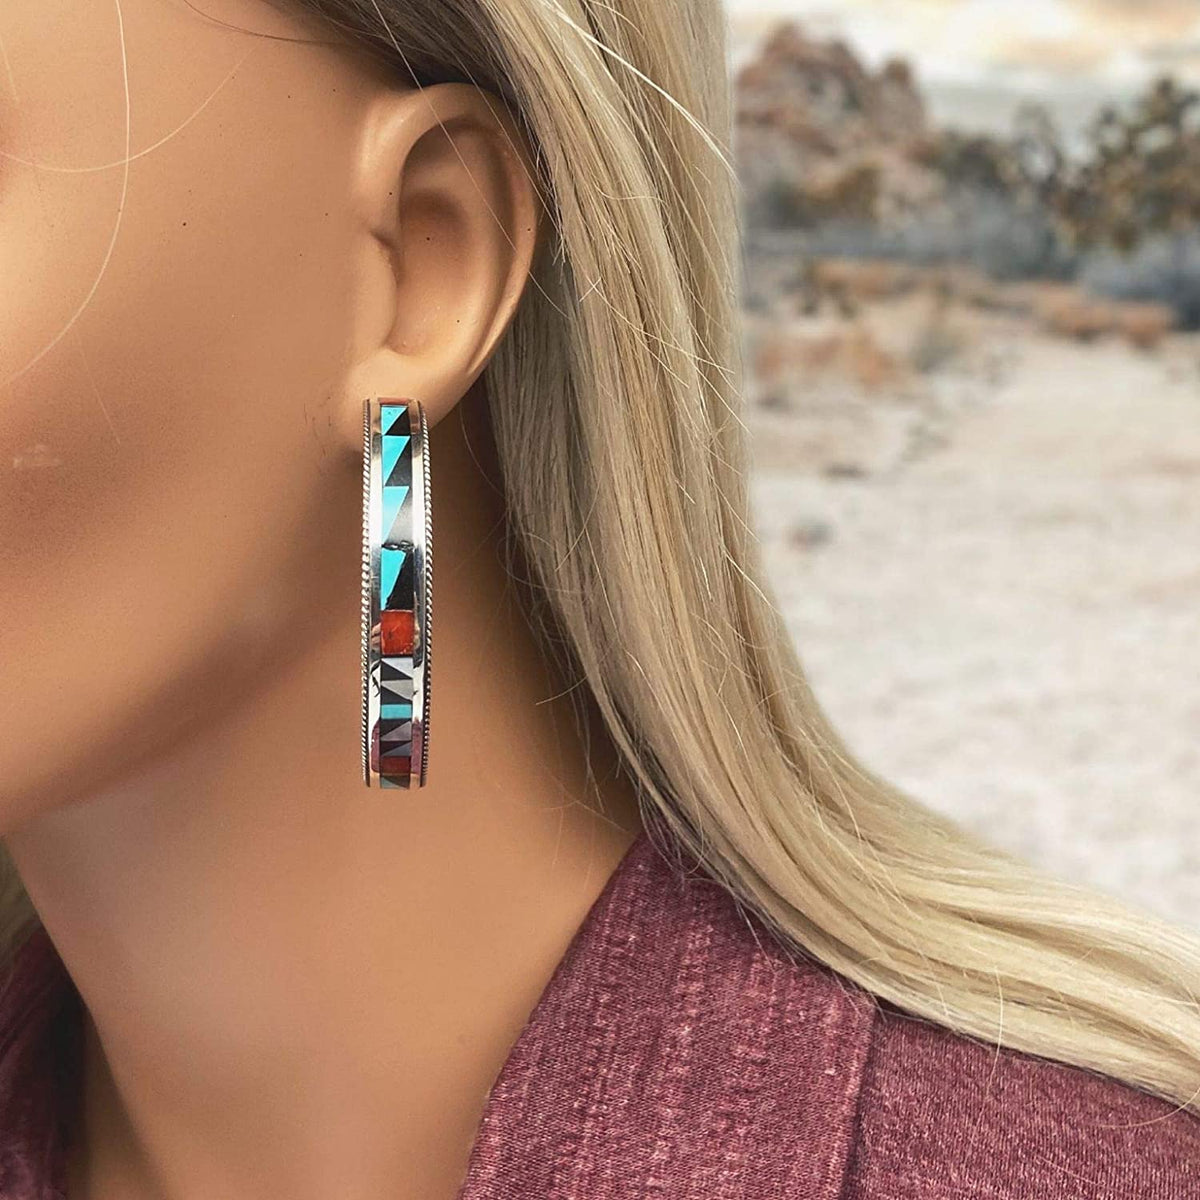 Genuine Stone Statement Hoop Earrings, Zuni Tribe Native American USA Handmade, Turquoise, Coral, Onyx, Mother of Pearl, Sterling Silver